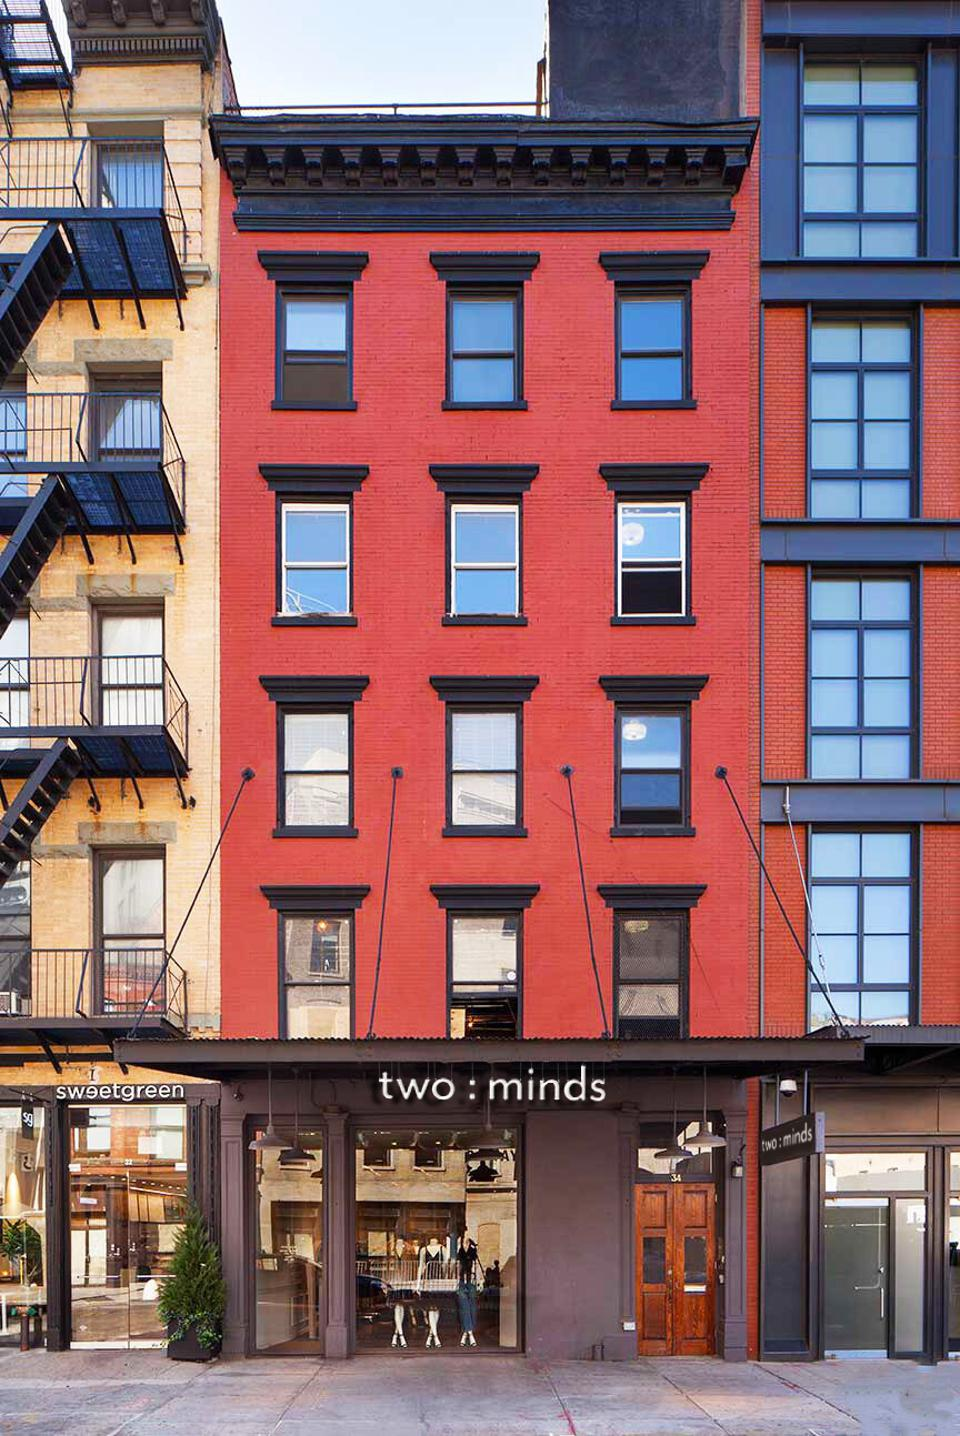 Two: Minds, a new concept store for men's and women's fashion, is opening in Manhattan's Meatpacking District.